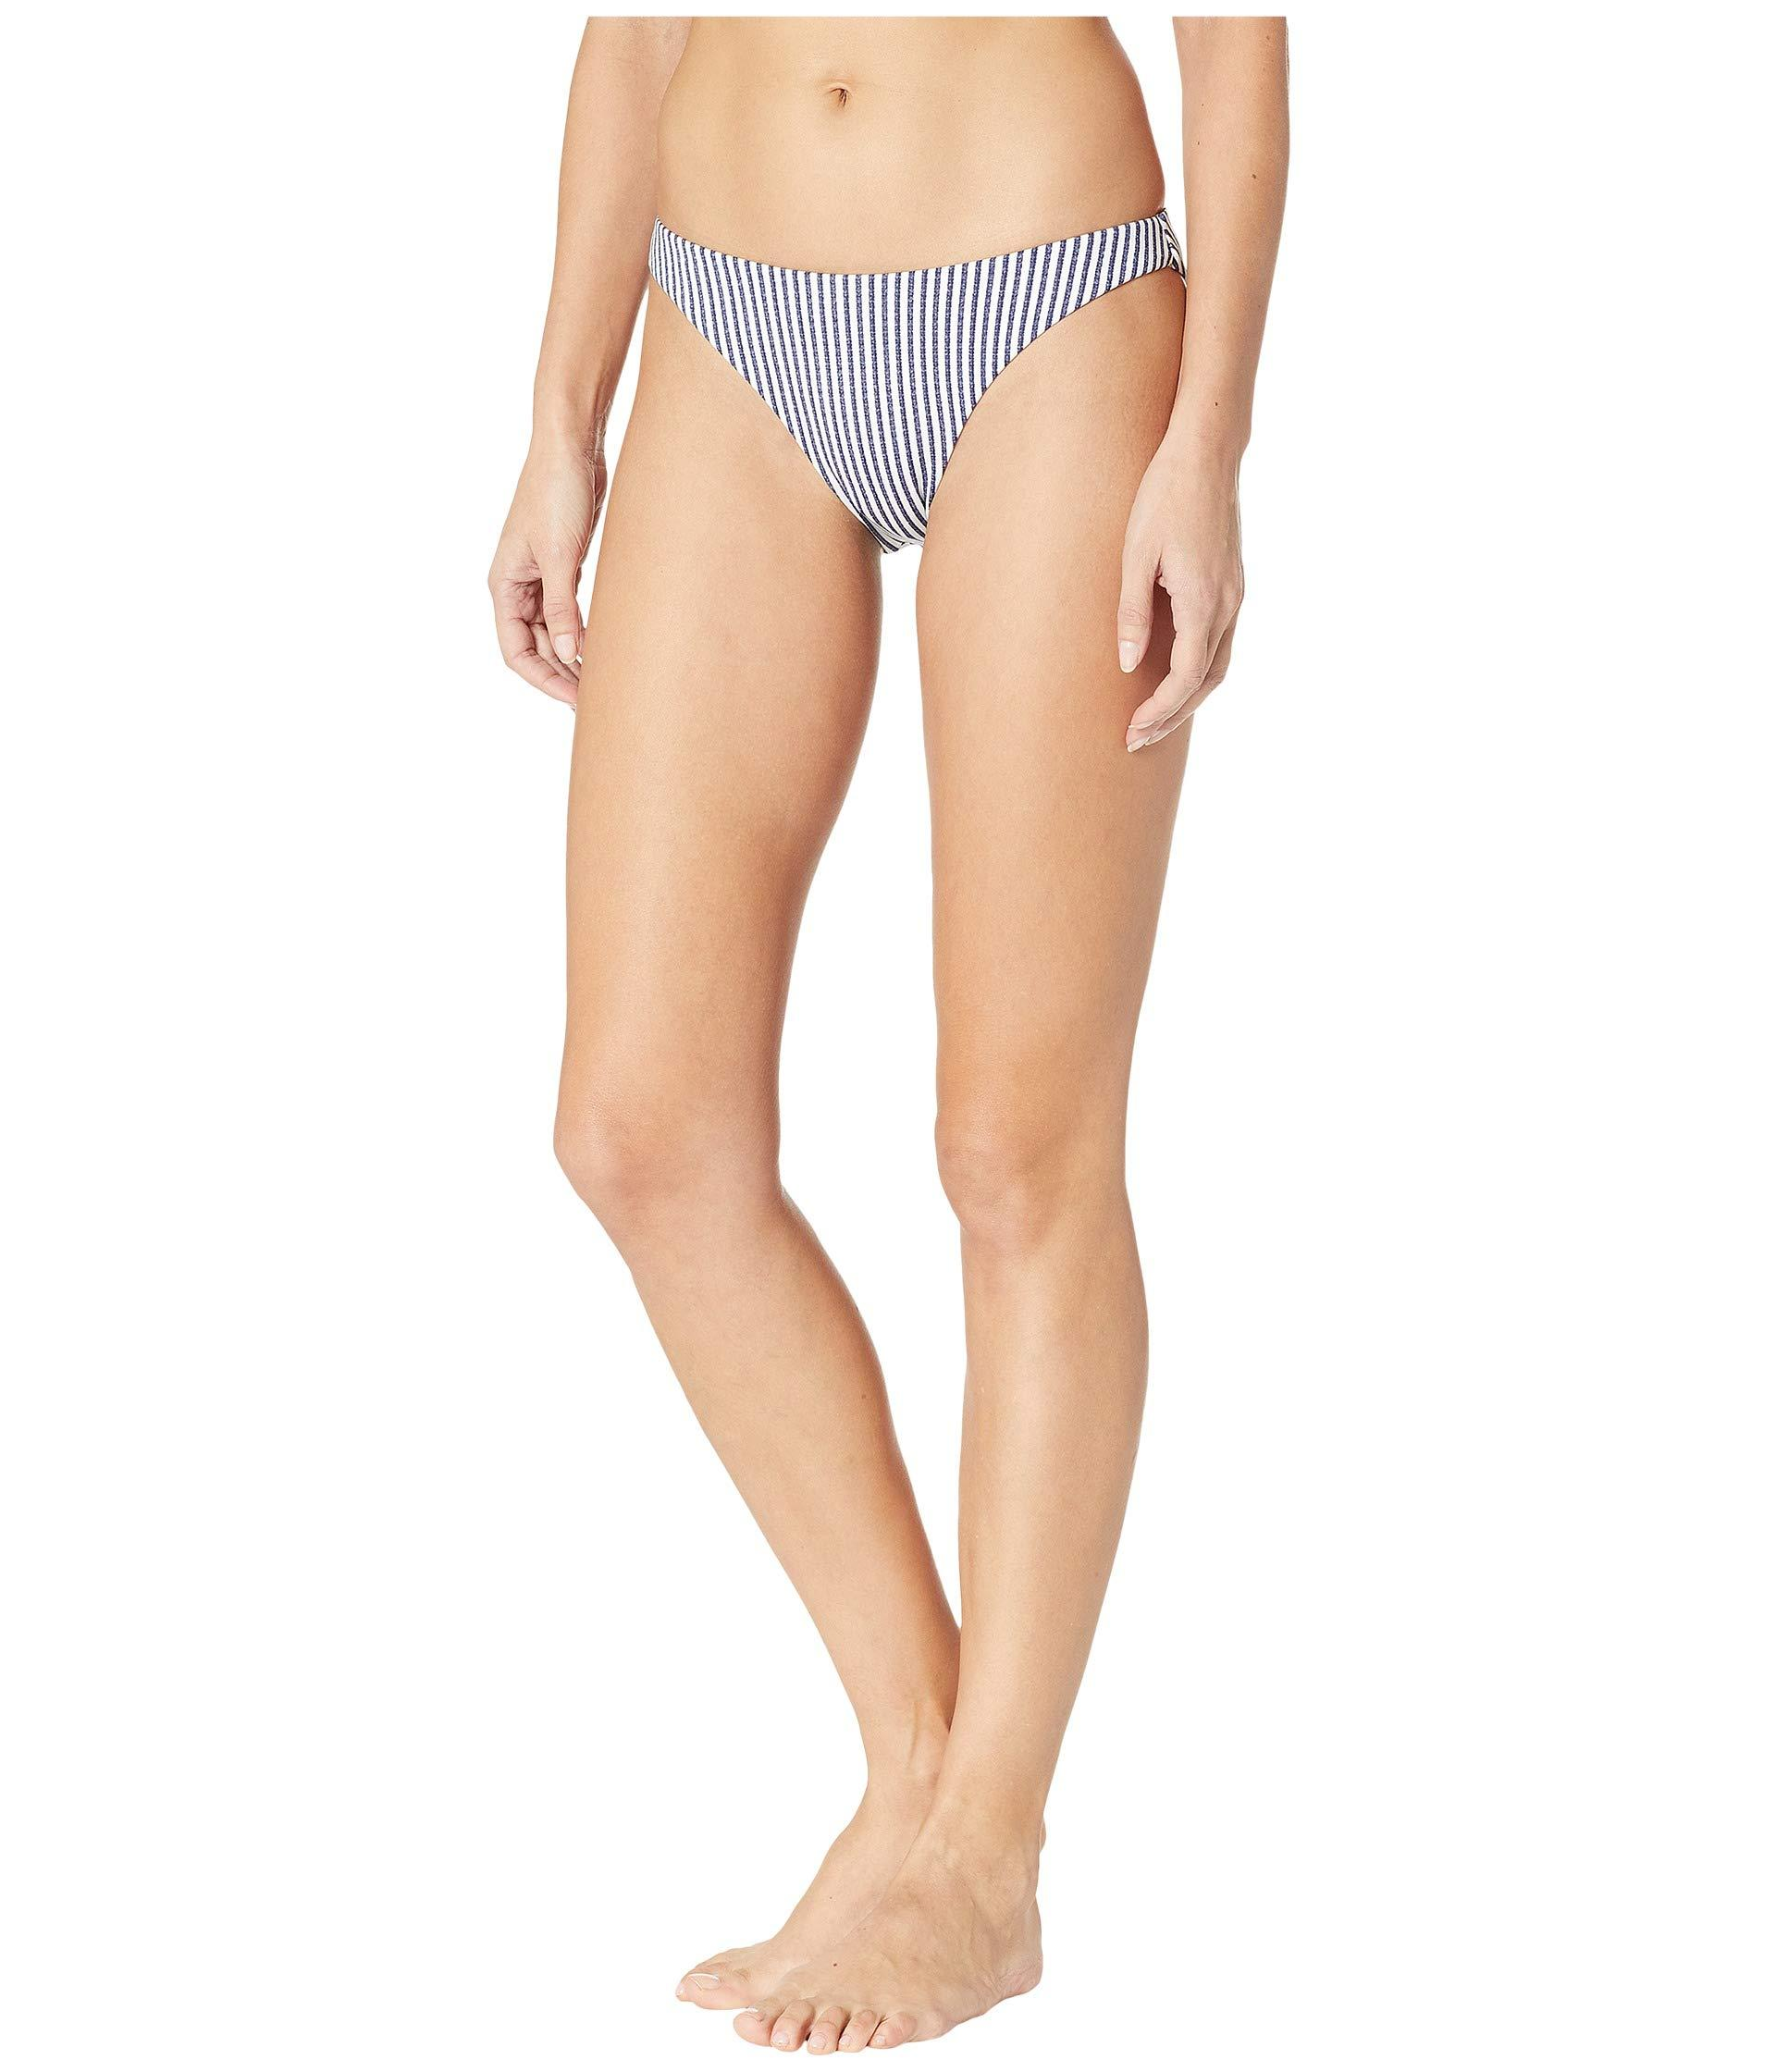 51e0b84d0b3 Lyst - Roxy Printed Softly Love Reversible Full Swimsuit Bottoms in Blue -  Save 23%